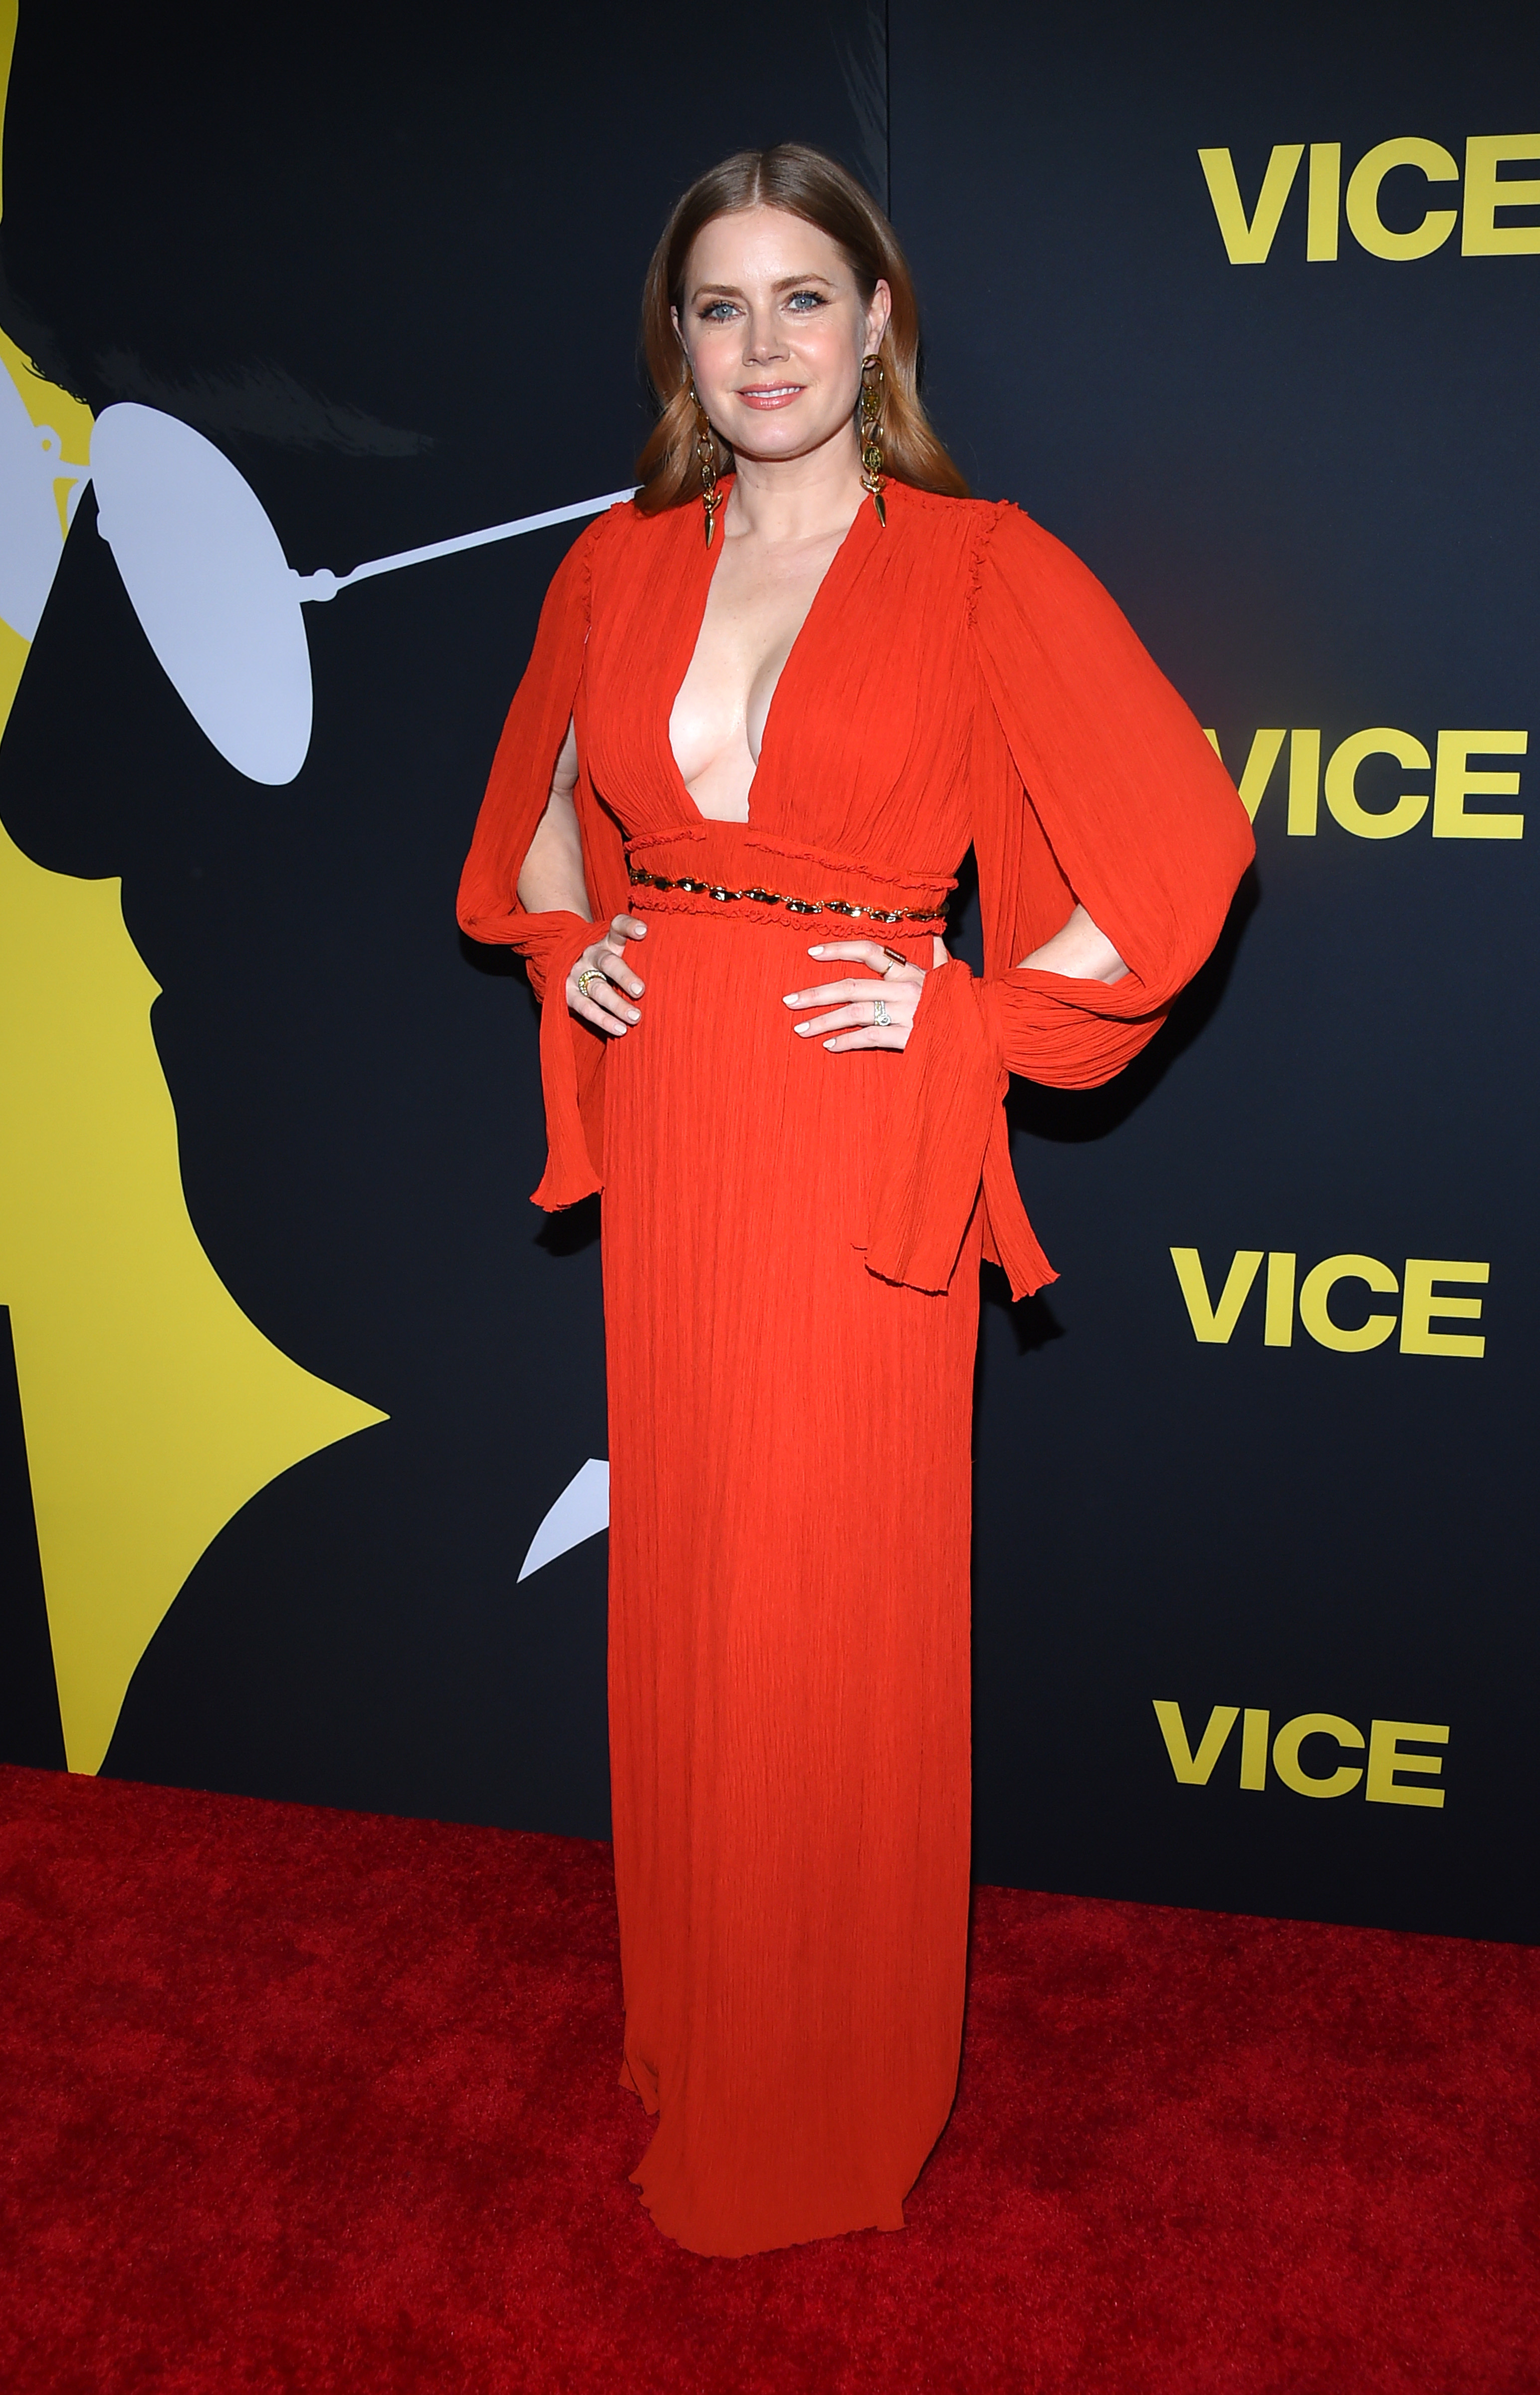 """Amy Adams attends the """"Vice"""" film premiere in Los Angeles on Dec. 11, 2018."""